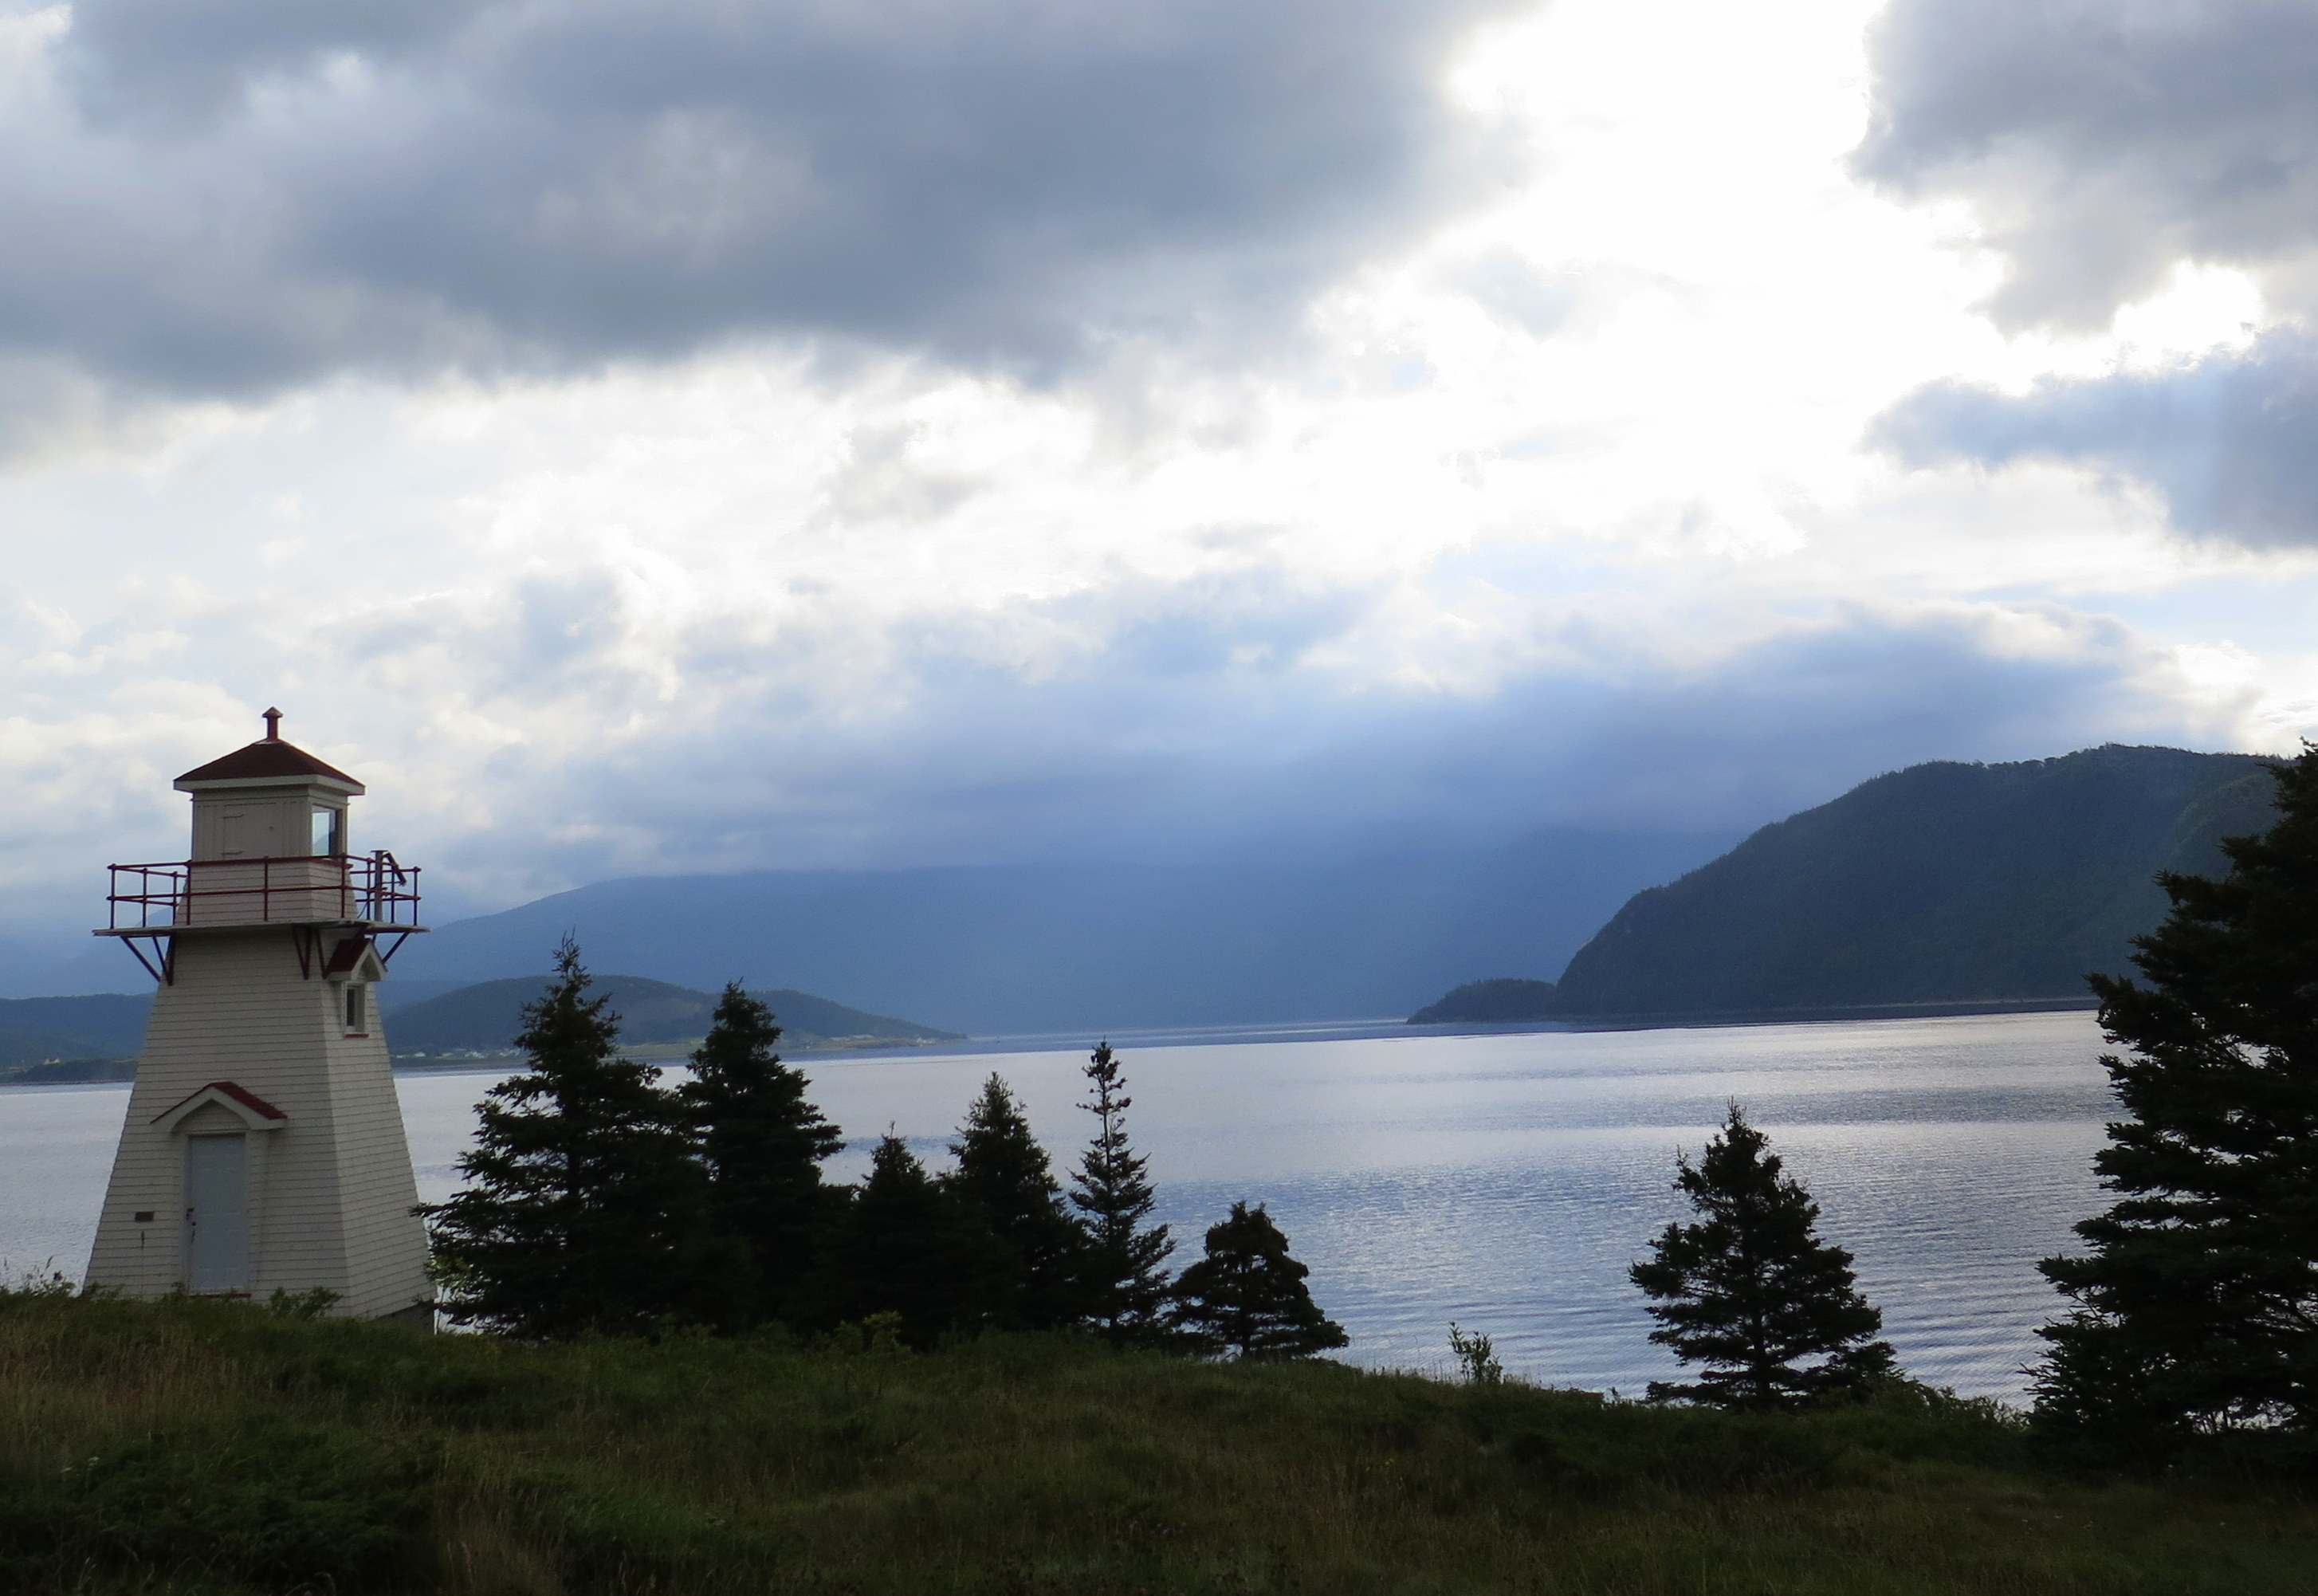 Woody Point and Gros Morne National Park are a lovely part of Newfoundland.